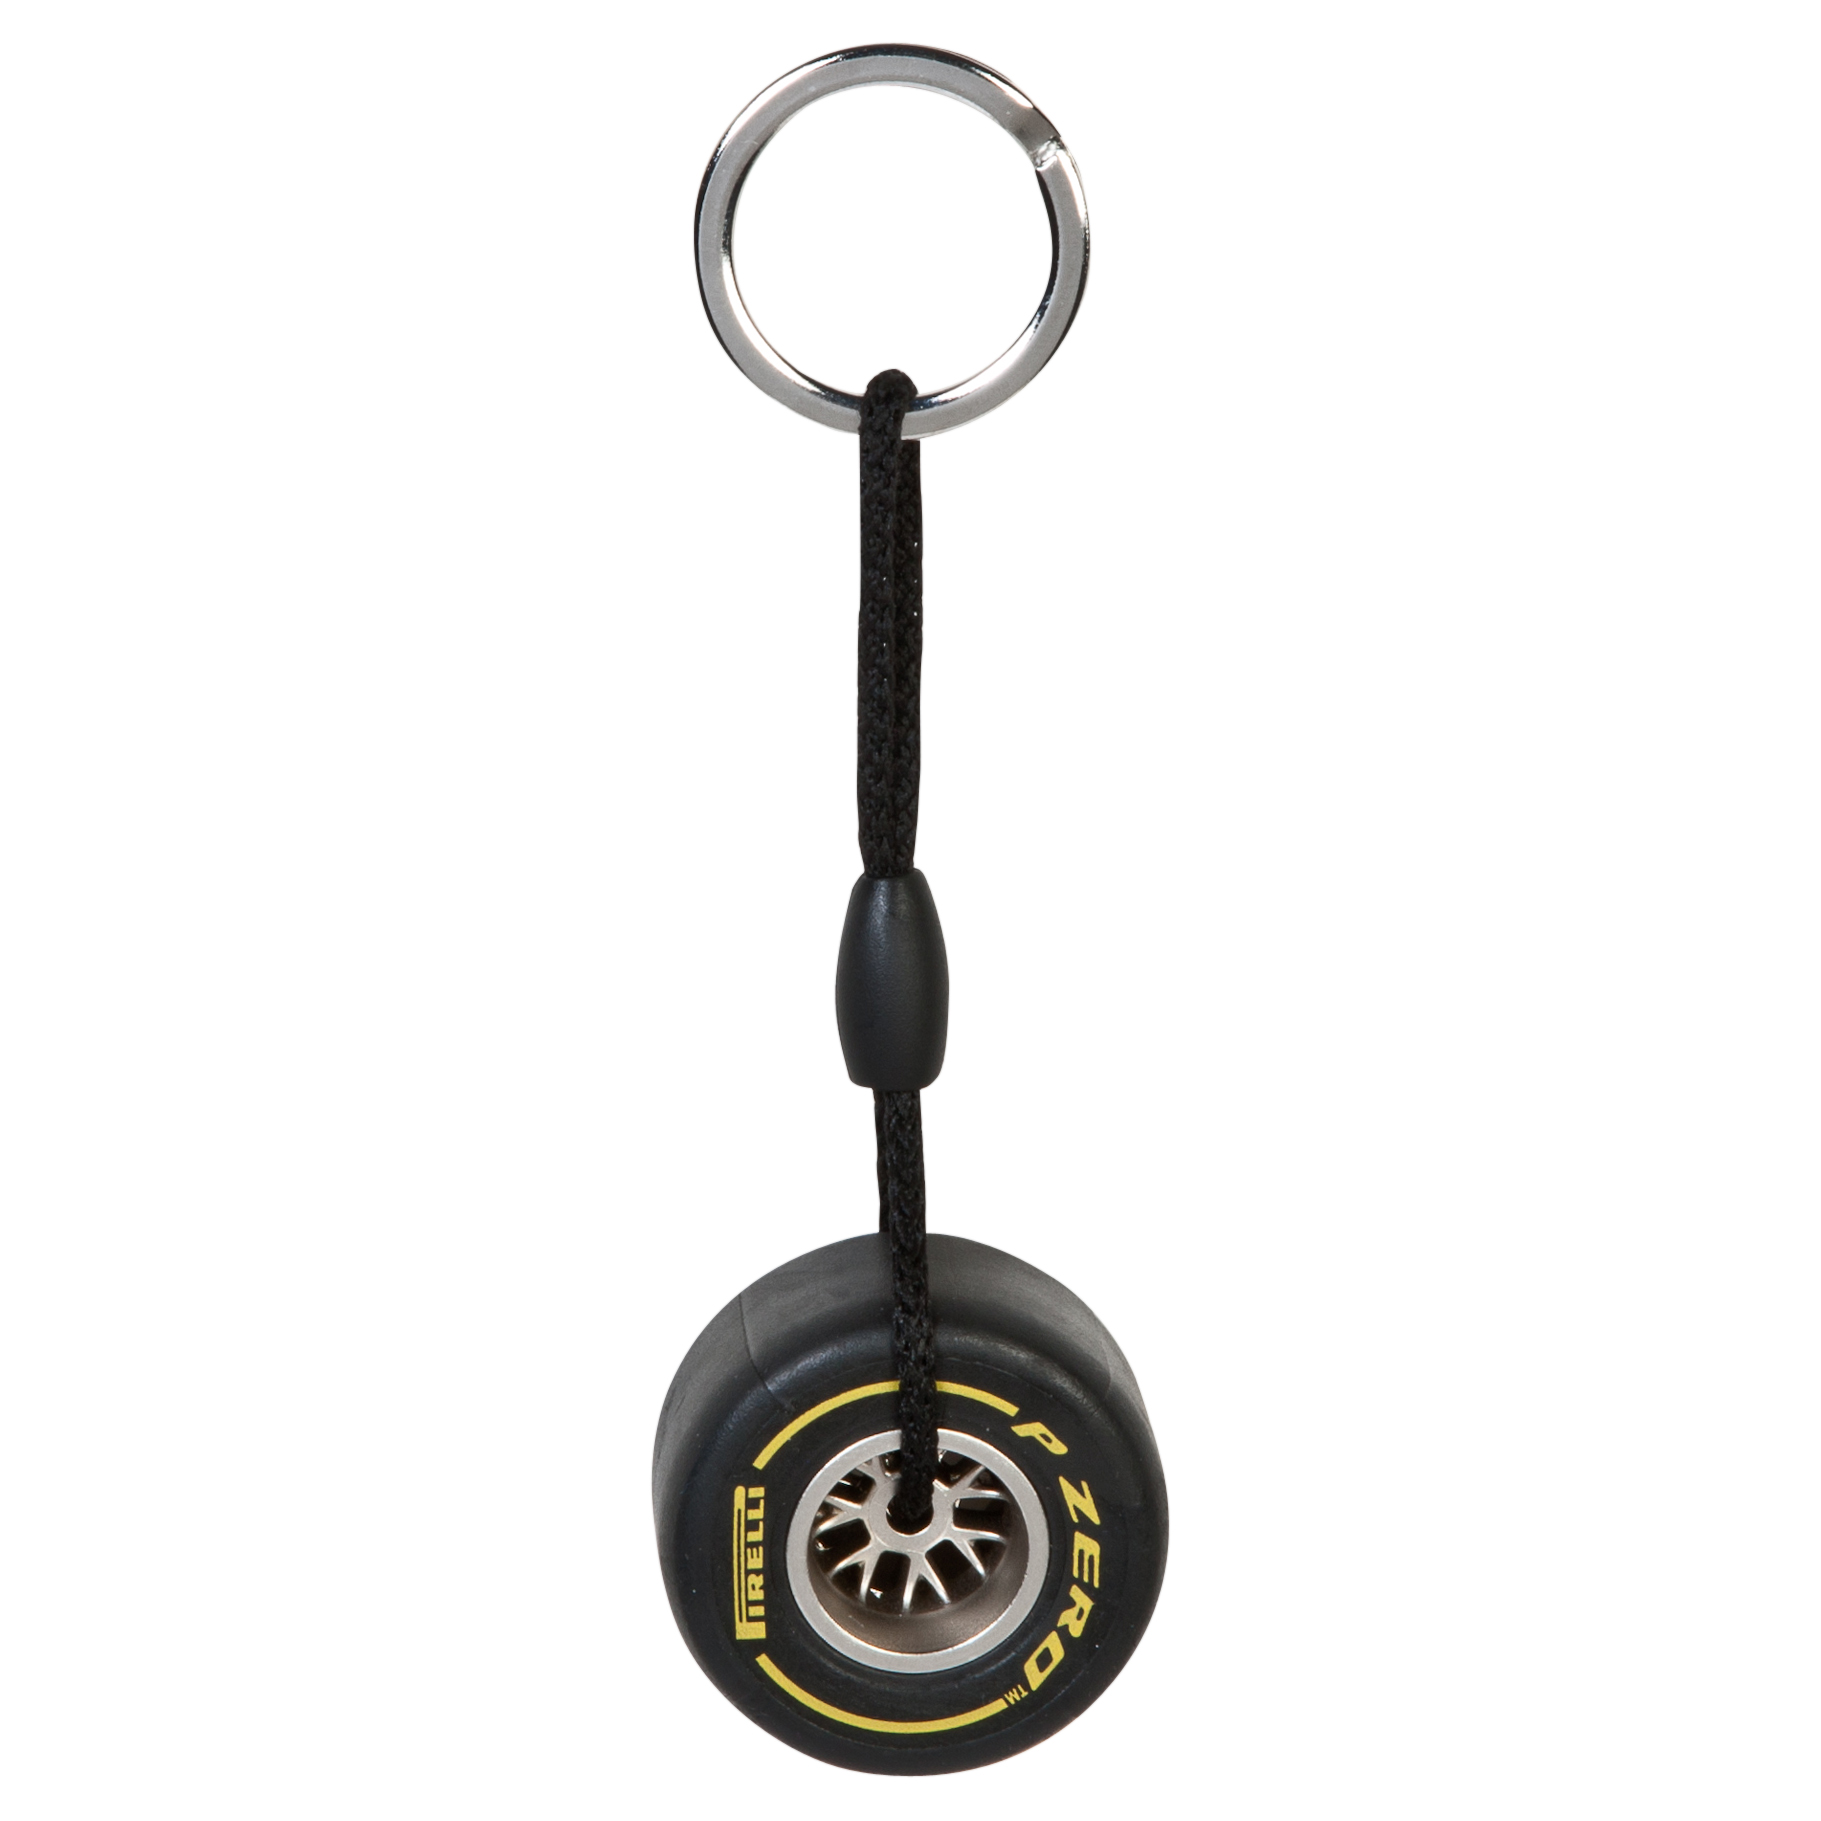 Pirelli Rim Tyre Key Ring - Soft Yellow